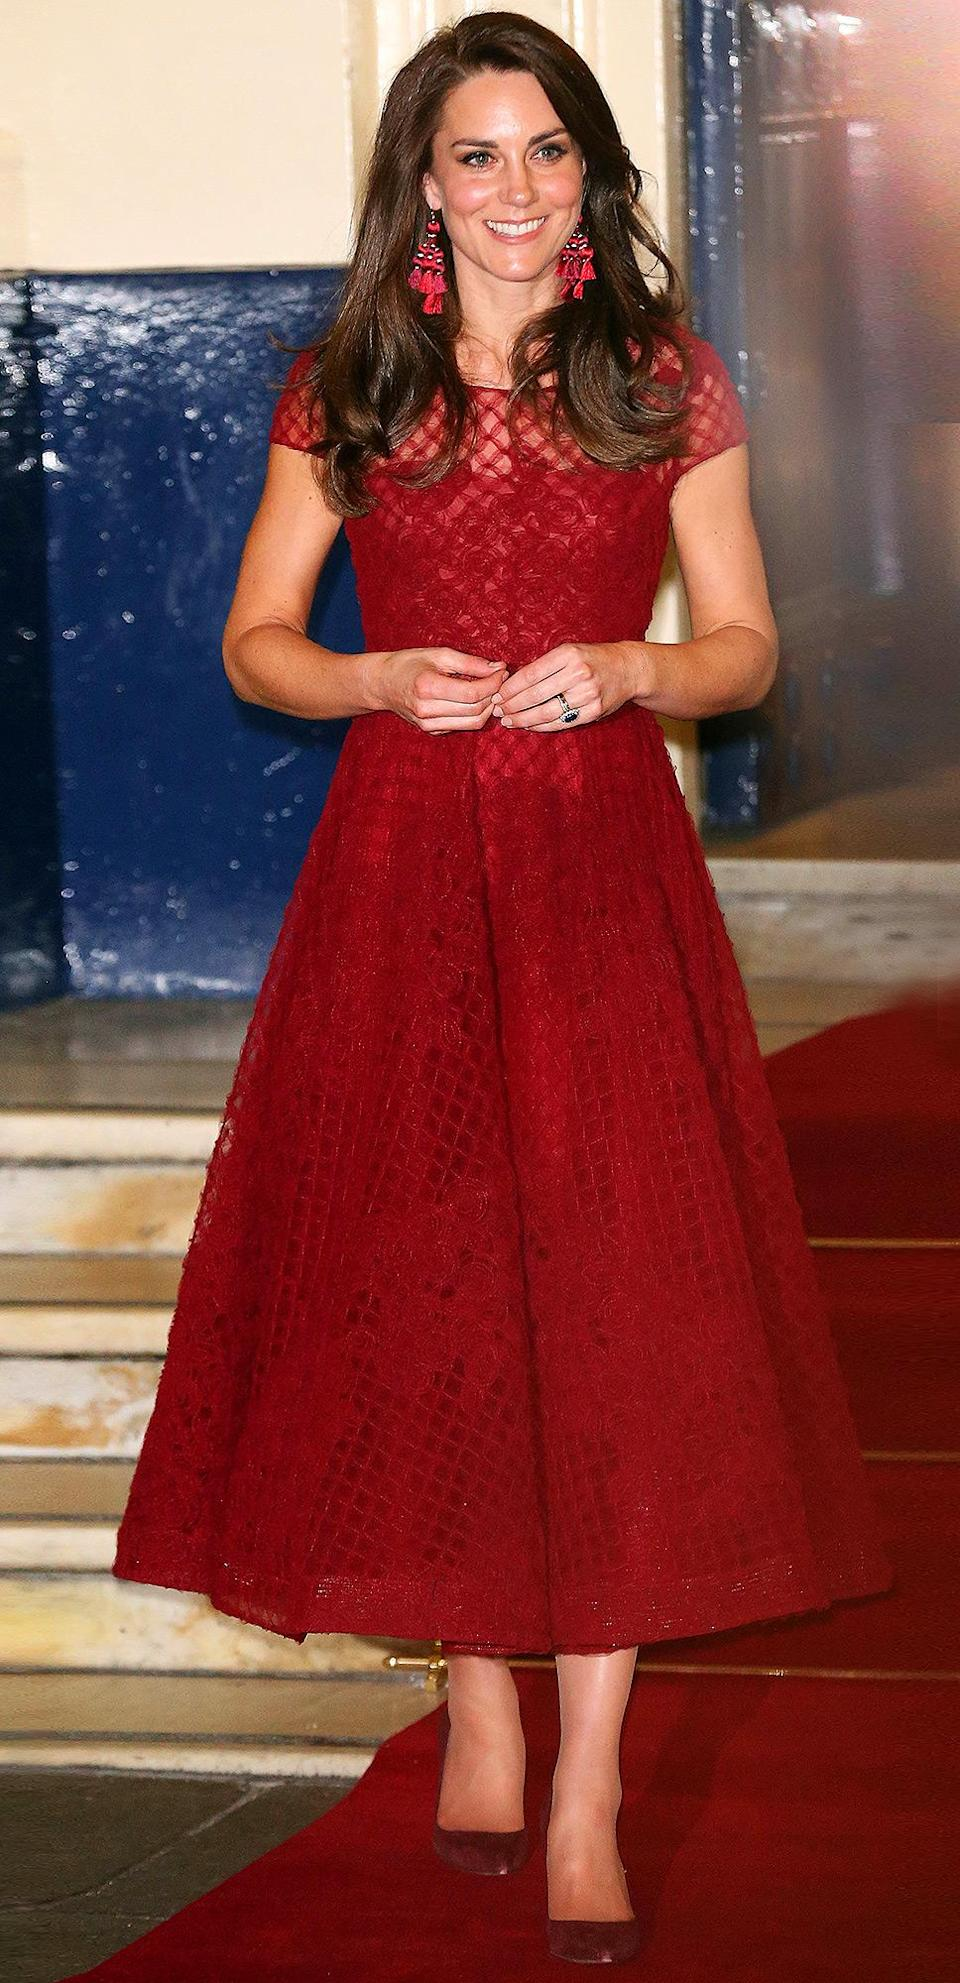 """<p><b>When:</b> April 4, 2017 <b>Where:</b> The <a href=""""http://people.com/royals/red-carpet-royal-princess-kate-steps-out-on-42nd-street/"""" rel=""""nofollow noopener"""" target=""""_blank"""" data-ylk=""""slk:opening night performance of 42nd Street in London"""" class=""""link rapid-noclick-resp"""">opening night performance of <i>42nd Street </i>in London </a><b>Wearing:</b> A Marchesa Notte dress <b>Get the Look: </b>Adrianna Papell Lace Cap-Sleeve Illusion Sheath Dress, $189; <a href=""""https://click.linksynergy.com/fs-bin/click?id=93xLBvPhAeE&subid=0&offerid=486467.1&type=10&tmpid=1513&RD_PARM1=https%3A%2F%2Fwww.macys.com%2Fshop%2Fproduct%2Fadrianna-papell-lace-cap-sleeve-illusion-sheath-dress%3FID%3D1651998%2526CategoryID%3D5449&u1=POROYALSKateSpringStyleMM"""" rel=""""nofollow noopener"""" target=""""_blank"""" data-ylk=""""slk:macys.com"""" class=""""link rapid-noclick-resp"""">macys.com</a> Bardot Kira Crochet Ruffle Dress, $129; <a href=""""https://click.linksynergy.com/fs-bin/click?id=93xLBvPhAeE&subid=0&offerid=390098.1&type=10&tmpid=8158&RD_PARM1=https%253A%252F%252Fshop.nordstrom.com%252Fs%252Fbardot-kira-crochet-ruffle-dress%252F4817433&u1=POROYALSKateSpringStyleMM"""" rel=""""nofollow noopener"""" target=""""_blank"""" data-ylk=""""slk:nordstrom.com"""" class=""""link rapid-noclick-resp"""">nordstrom.com</a> Chiffon Dress, $50; <a href=""""https://hm.evyy.net/c/249354/226427/3909?subId1=POROYALSKateSpringStyleMM&u=http%3A%2F%2Fwww.hm.com%2Fus%2Fproduct%2F91593%3Farticle%3D91593-A%26cm_vc%3DSEARCH"""" rel=""""nofollow noopener"""" target=""""_blank"""" data-ylk=""""slk:hm.com"""" class=""""link rapid-noclick-resp"""">hm.com</a> Boohoo Corded Lace Paneled Sakter Dress, $25; <a href=""""https://click.linksynergy.com/fs-bin/click?id=93xLBvPhAeE&subid=0&offerid=460292.1&type=10&tmpid=20905&RD_PARM1=http%3A%2F%2Fus.asos.com%2Fboohoo%2Fboohoo-corded-lace-paneled-skater-dress%2Fprd%2F8157349&u1=POROYALSKateSpringStyleMM"""" rel=""""nofollow noopener"""" target=""""_blank"""" data-ylk=""""slk:asos.com"""" class=""""link rapid-noclick-resp"""">asos.com</a> </p>"""